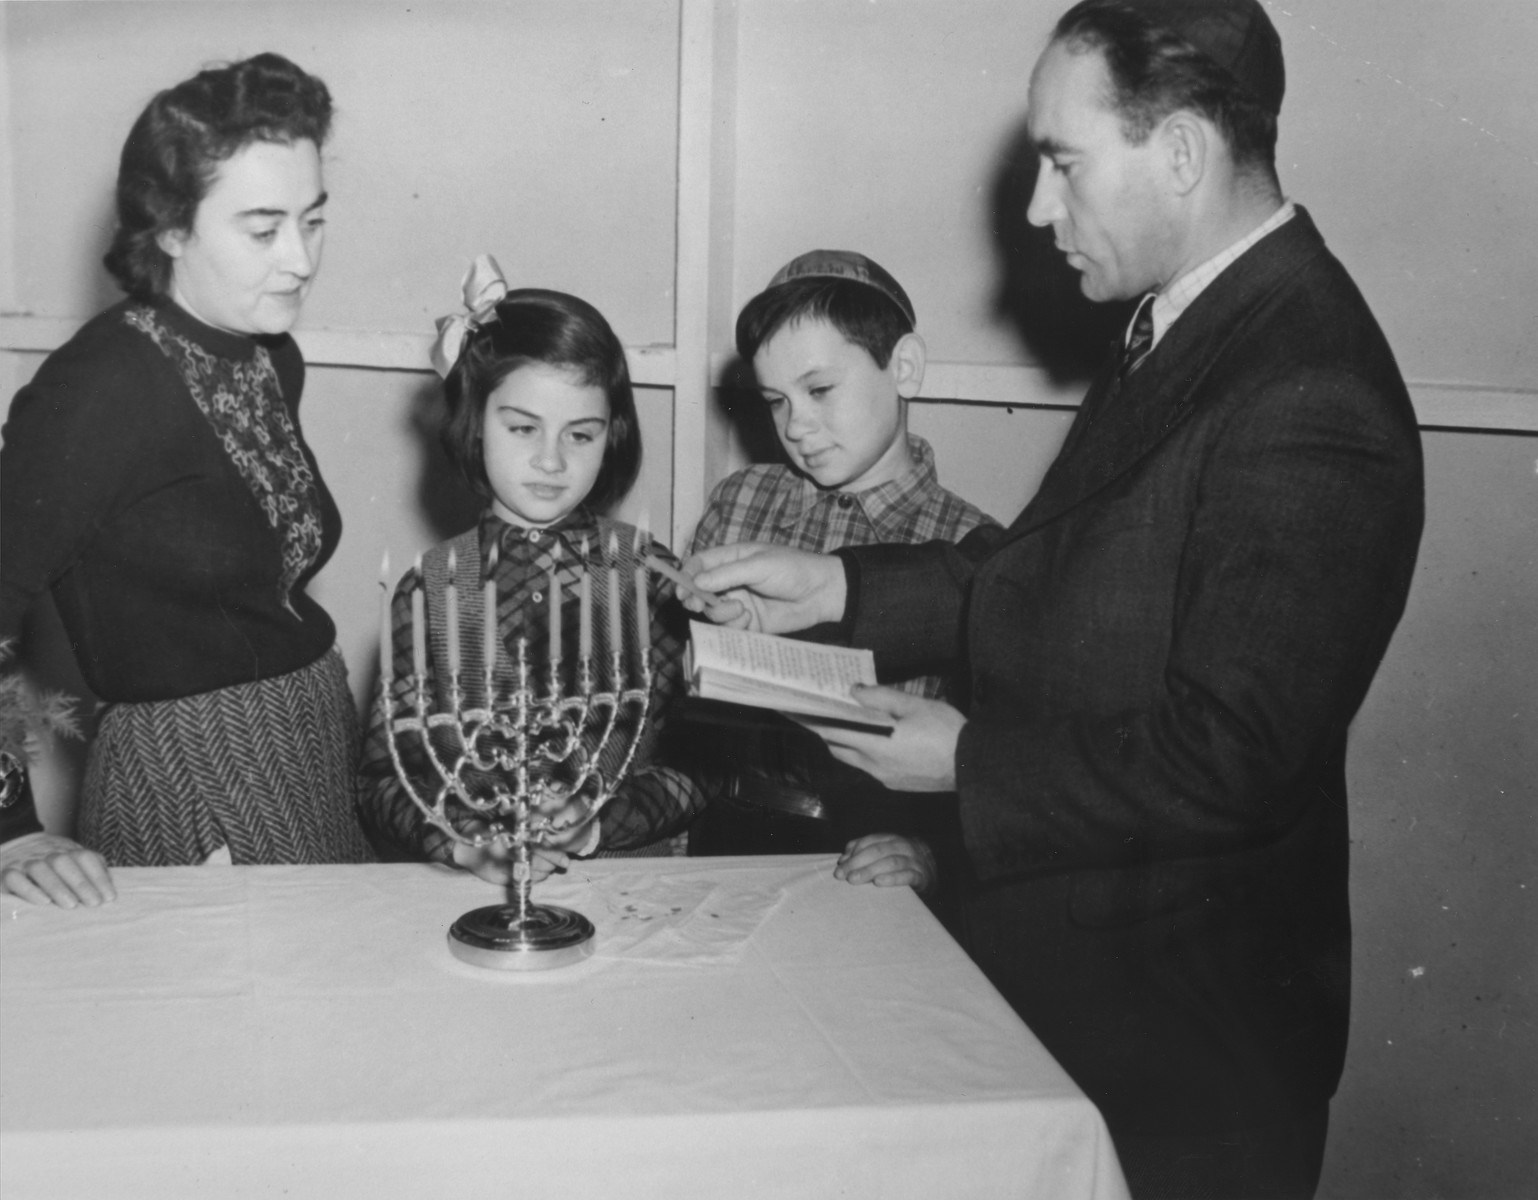 A Jewish refugee family lights a Hanukkah menorah in their room at the Fort Ontario refugee shelter.  Pictured are Eisig and Hana Hendel, their daughter Ruth, and nephew Vilko Kremer.